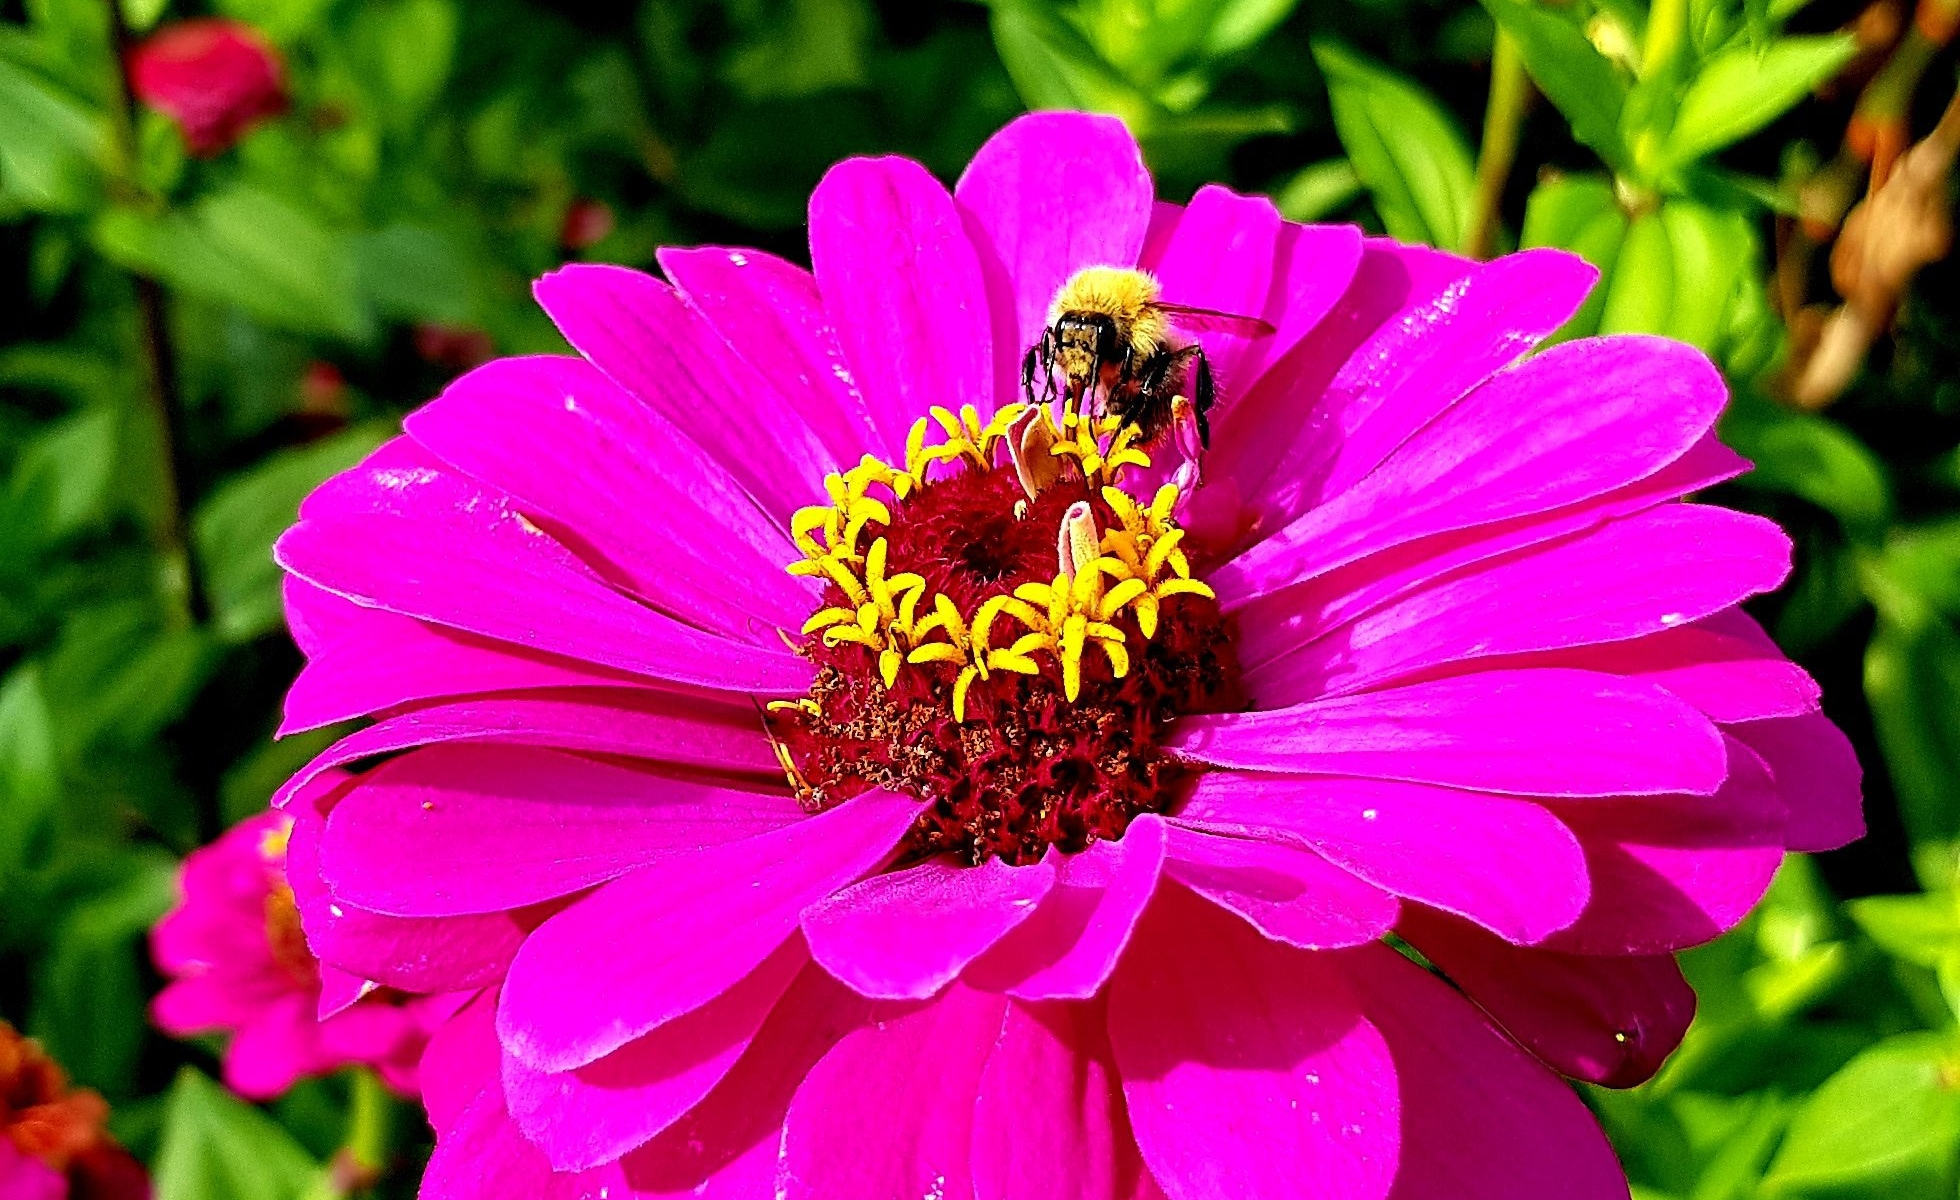 Symbiotic relationship: Bee and the Flower